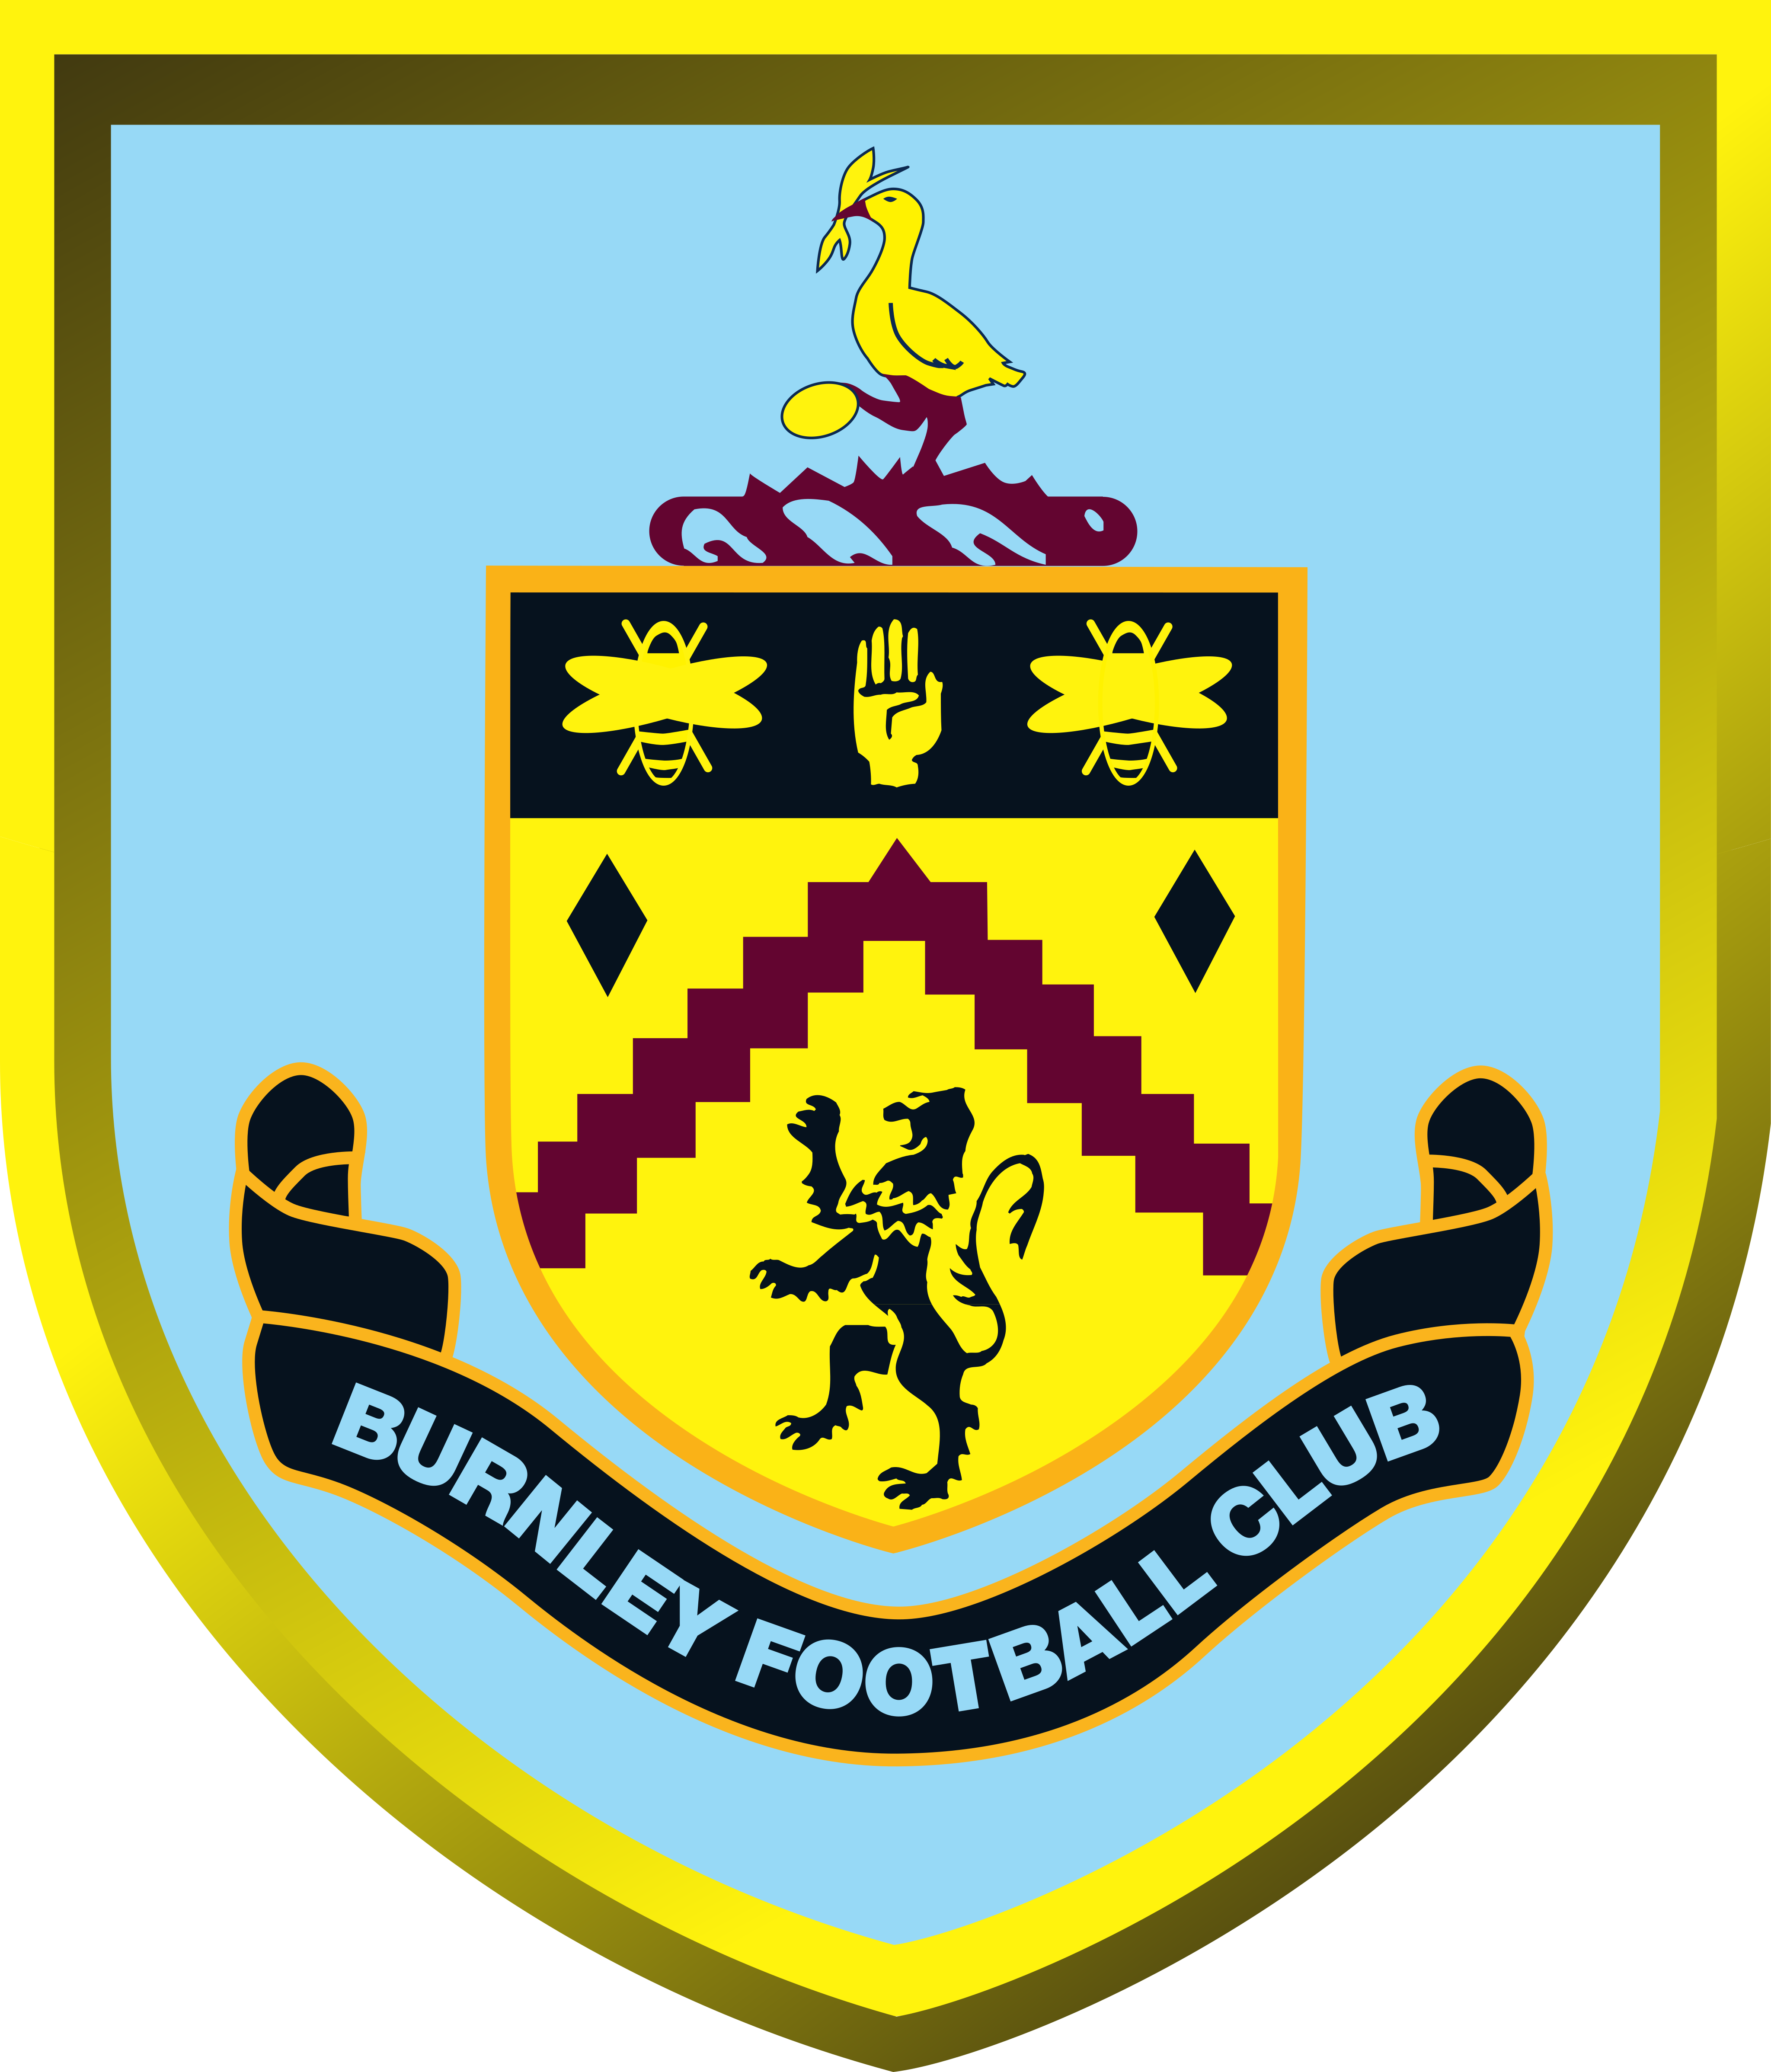 burnley logo - Burnley FC Logo